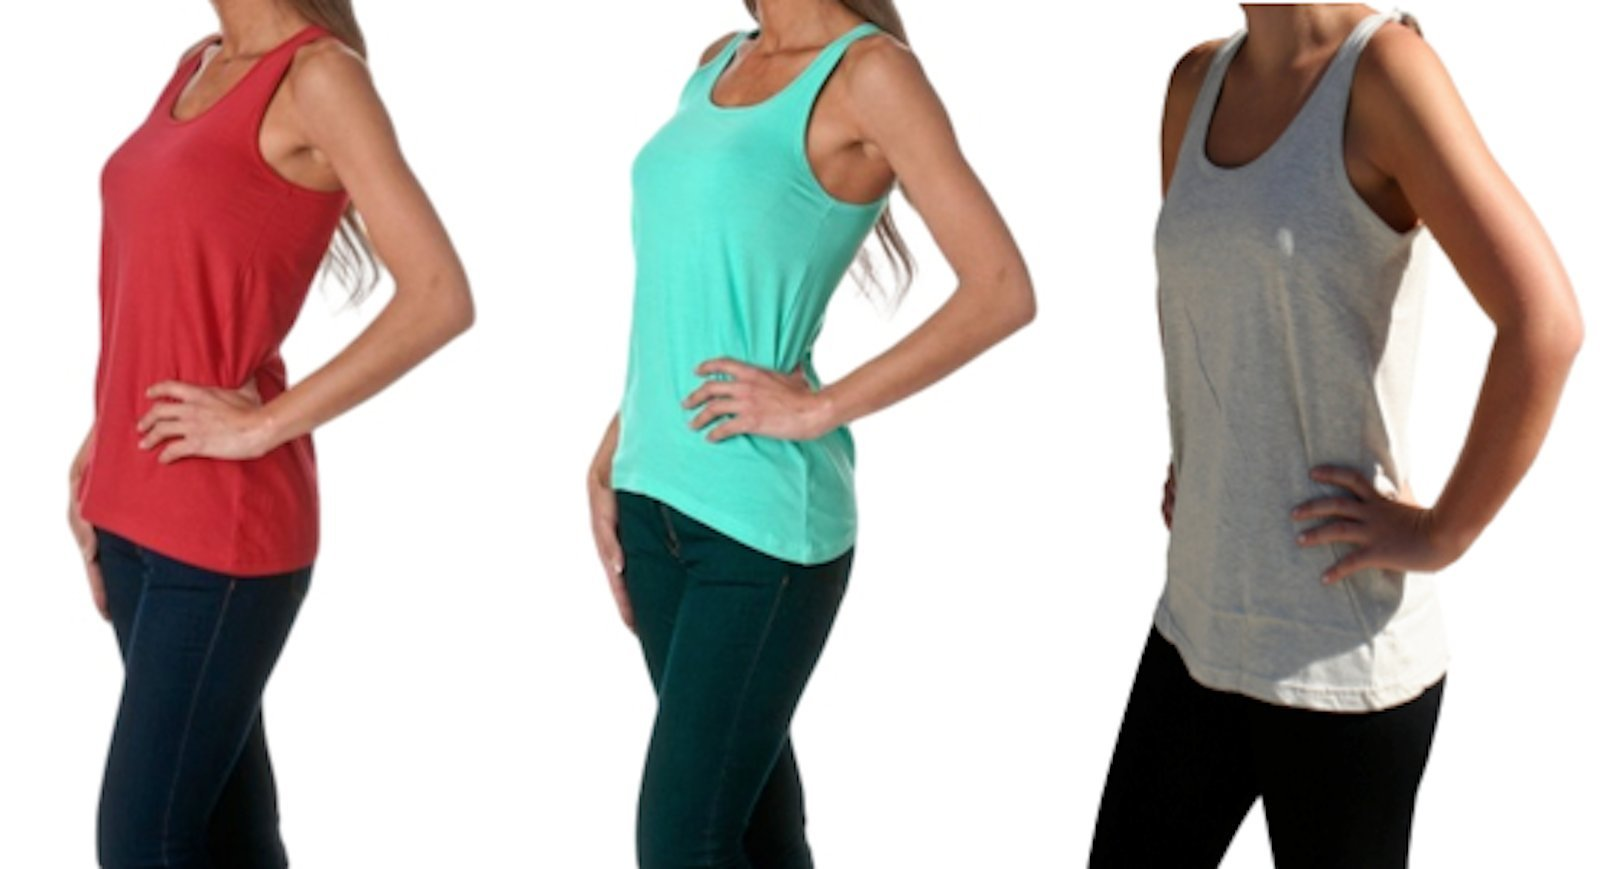 Sofra 3pk Women's Loose Fit Tank Top A-line Relaxed Flowy Style, Solid (L, Red Mint&H.Ash)